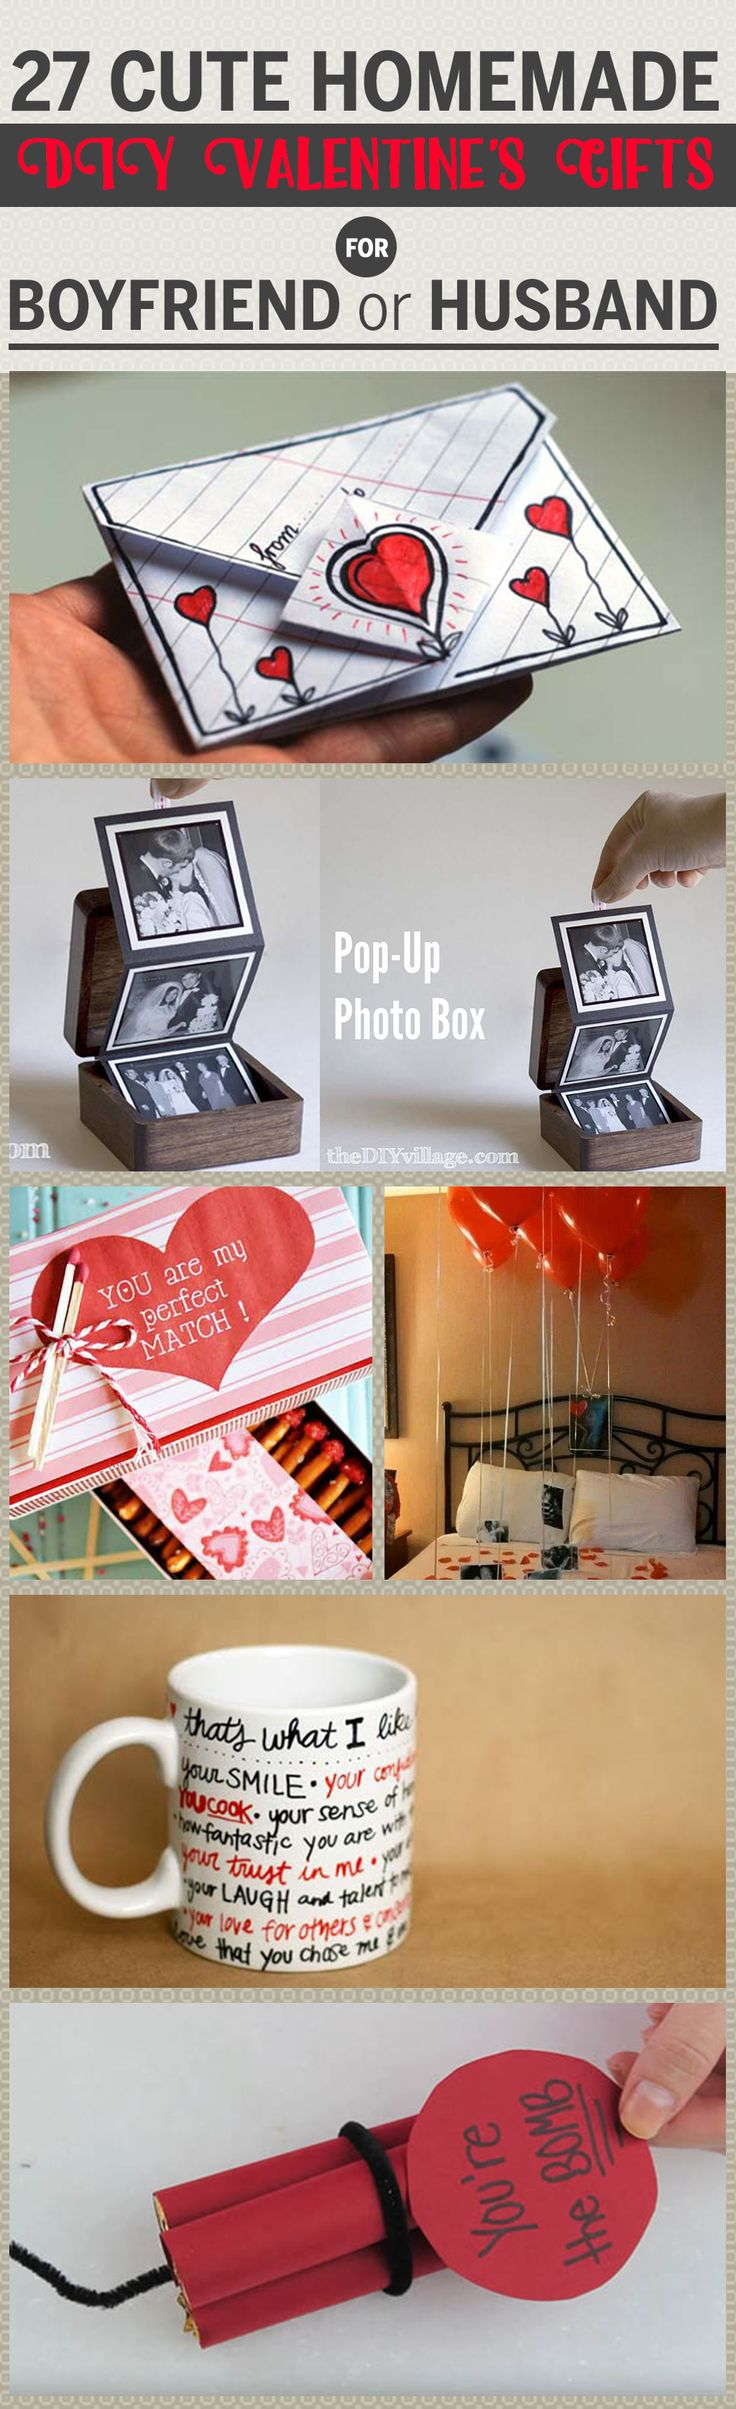 27 romantic DIY valentine's gifts for him to show how much you care